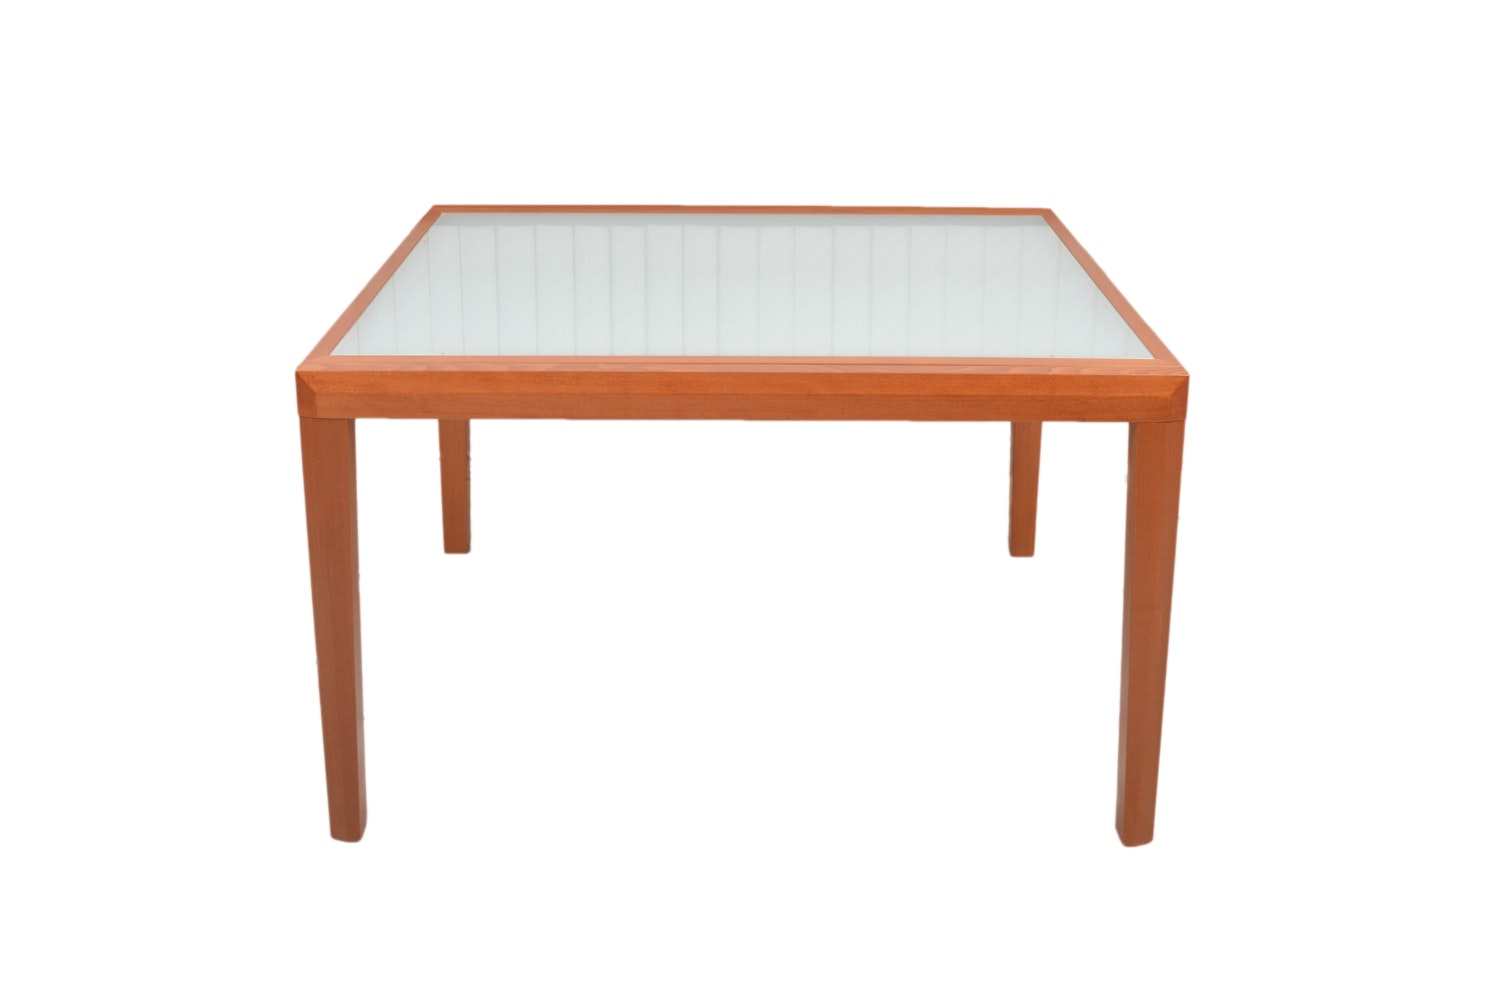 Opaque Glass Draw Leaf Table